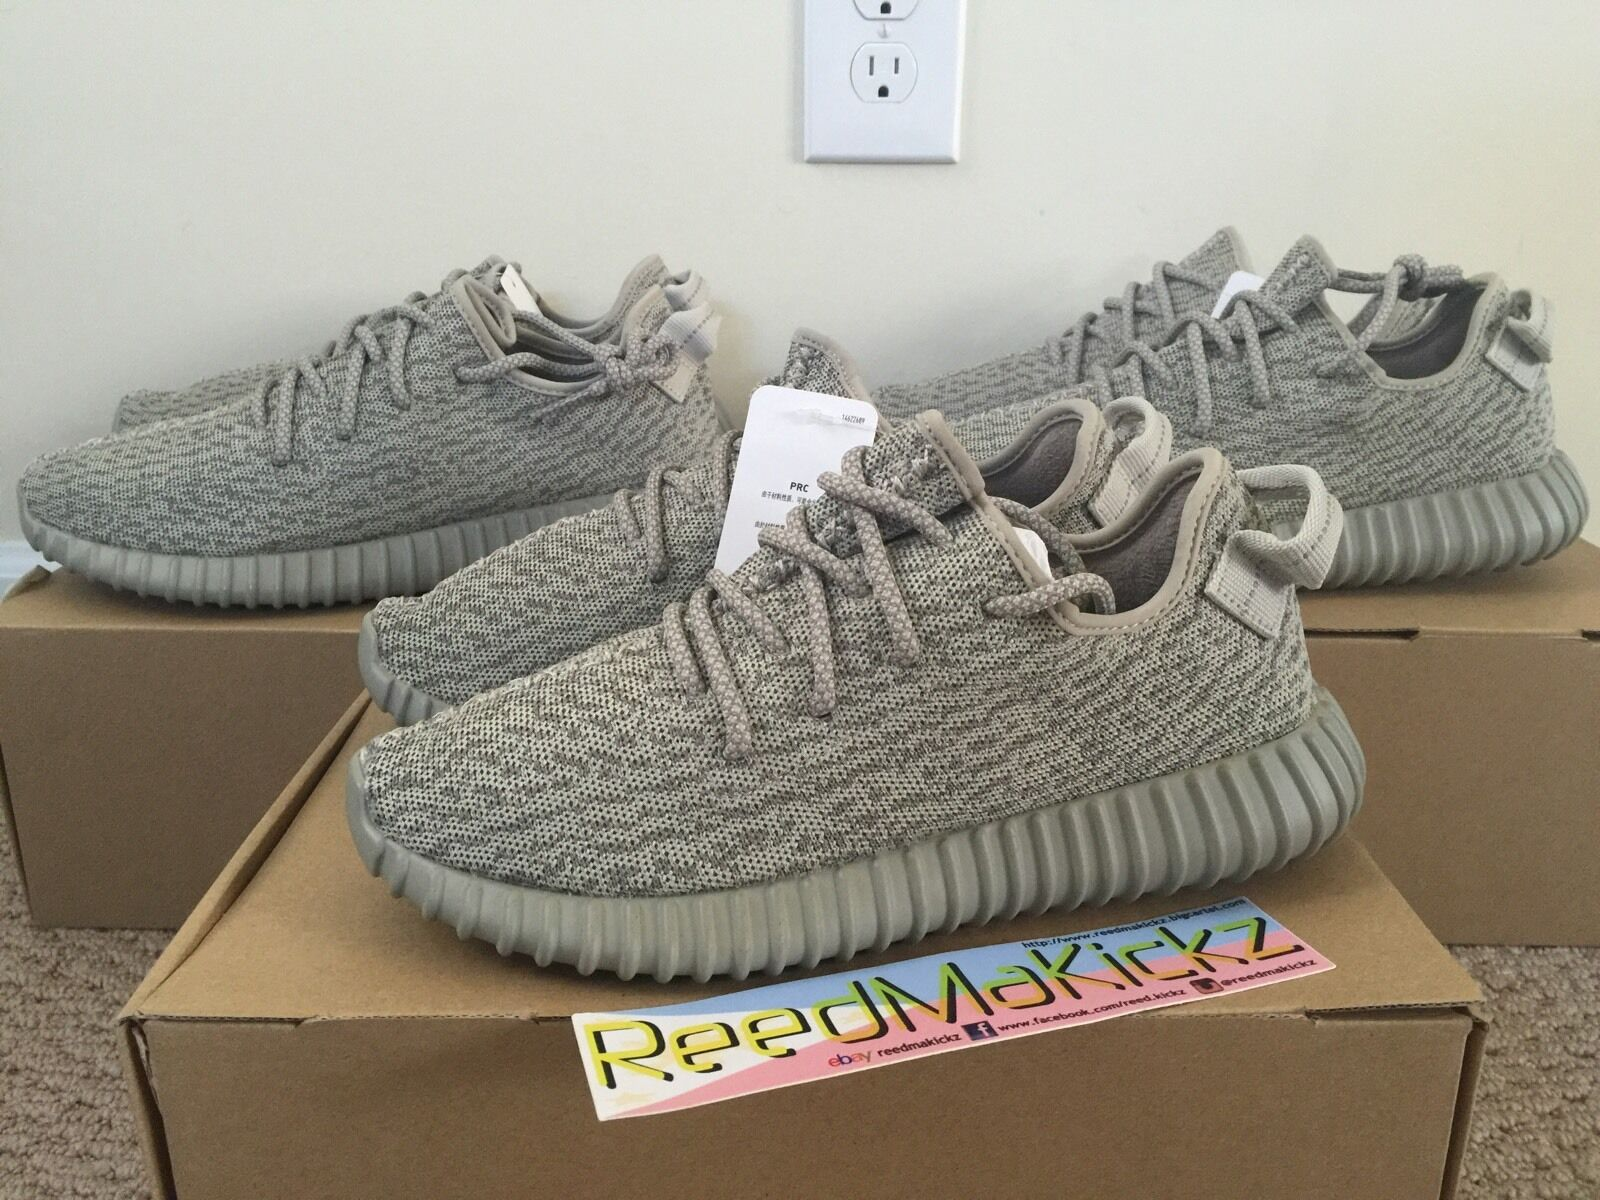 Adidas Yeezy Boost 350 x Kanye west Moonrock mens size 10.5 us 100% AUTHENTIC